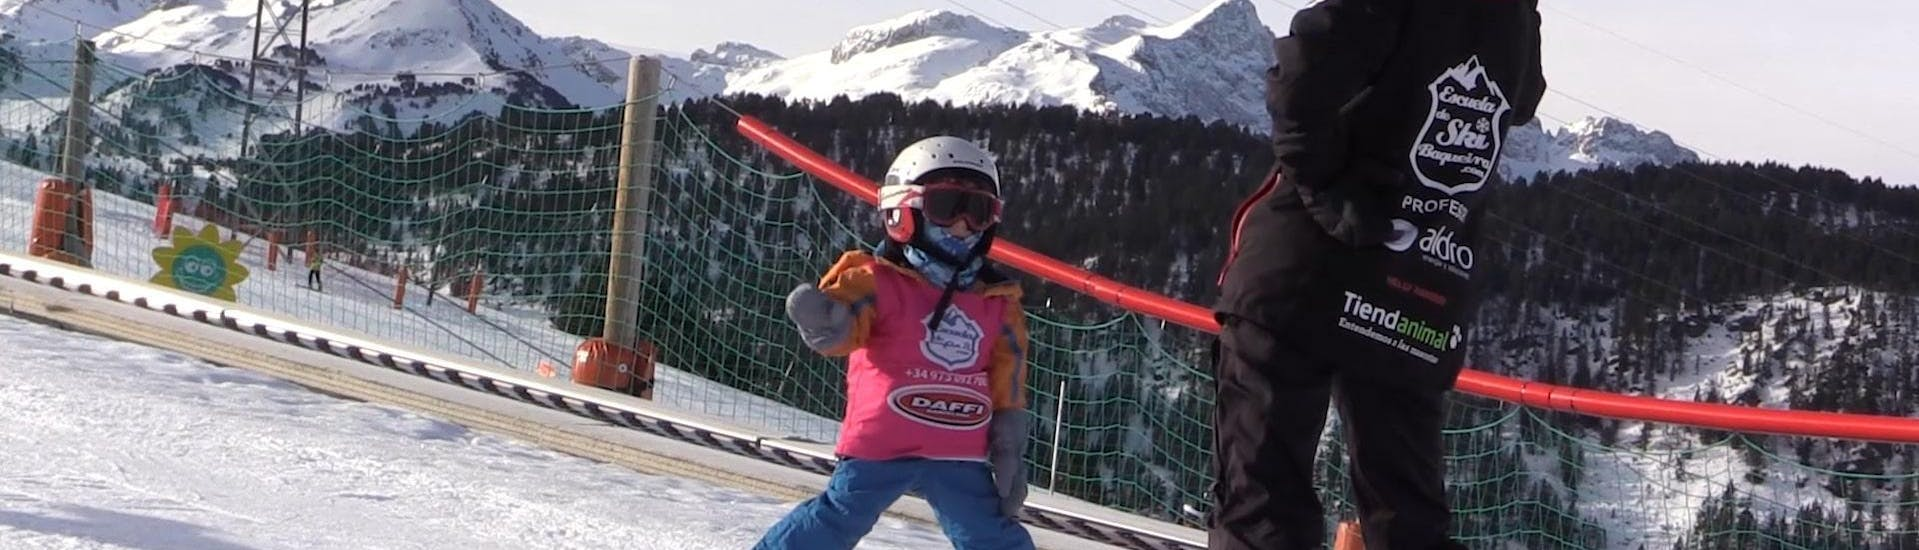 A child makes its first attempts on the slopes together with a ski instructor from Escuela Ski Cerler as part of the Kids Ski Lessons (4-17 y.) for all Levels.